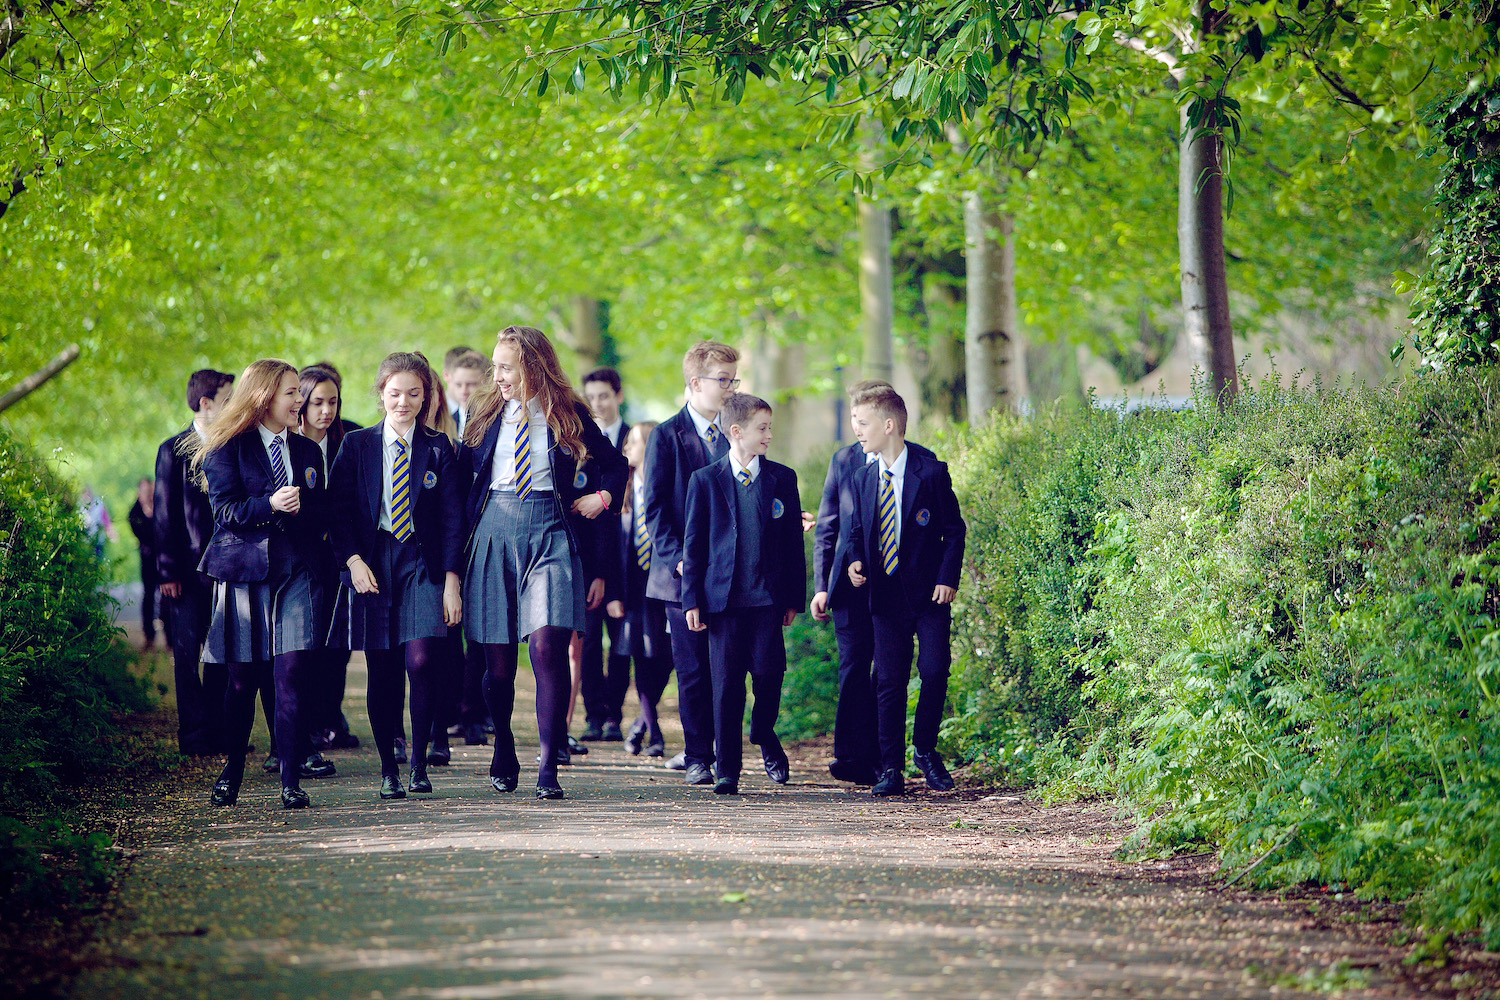 Pupils walking 001 – longer skirts and tie